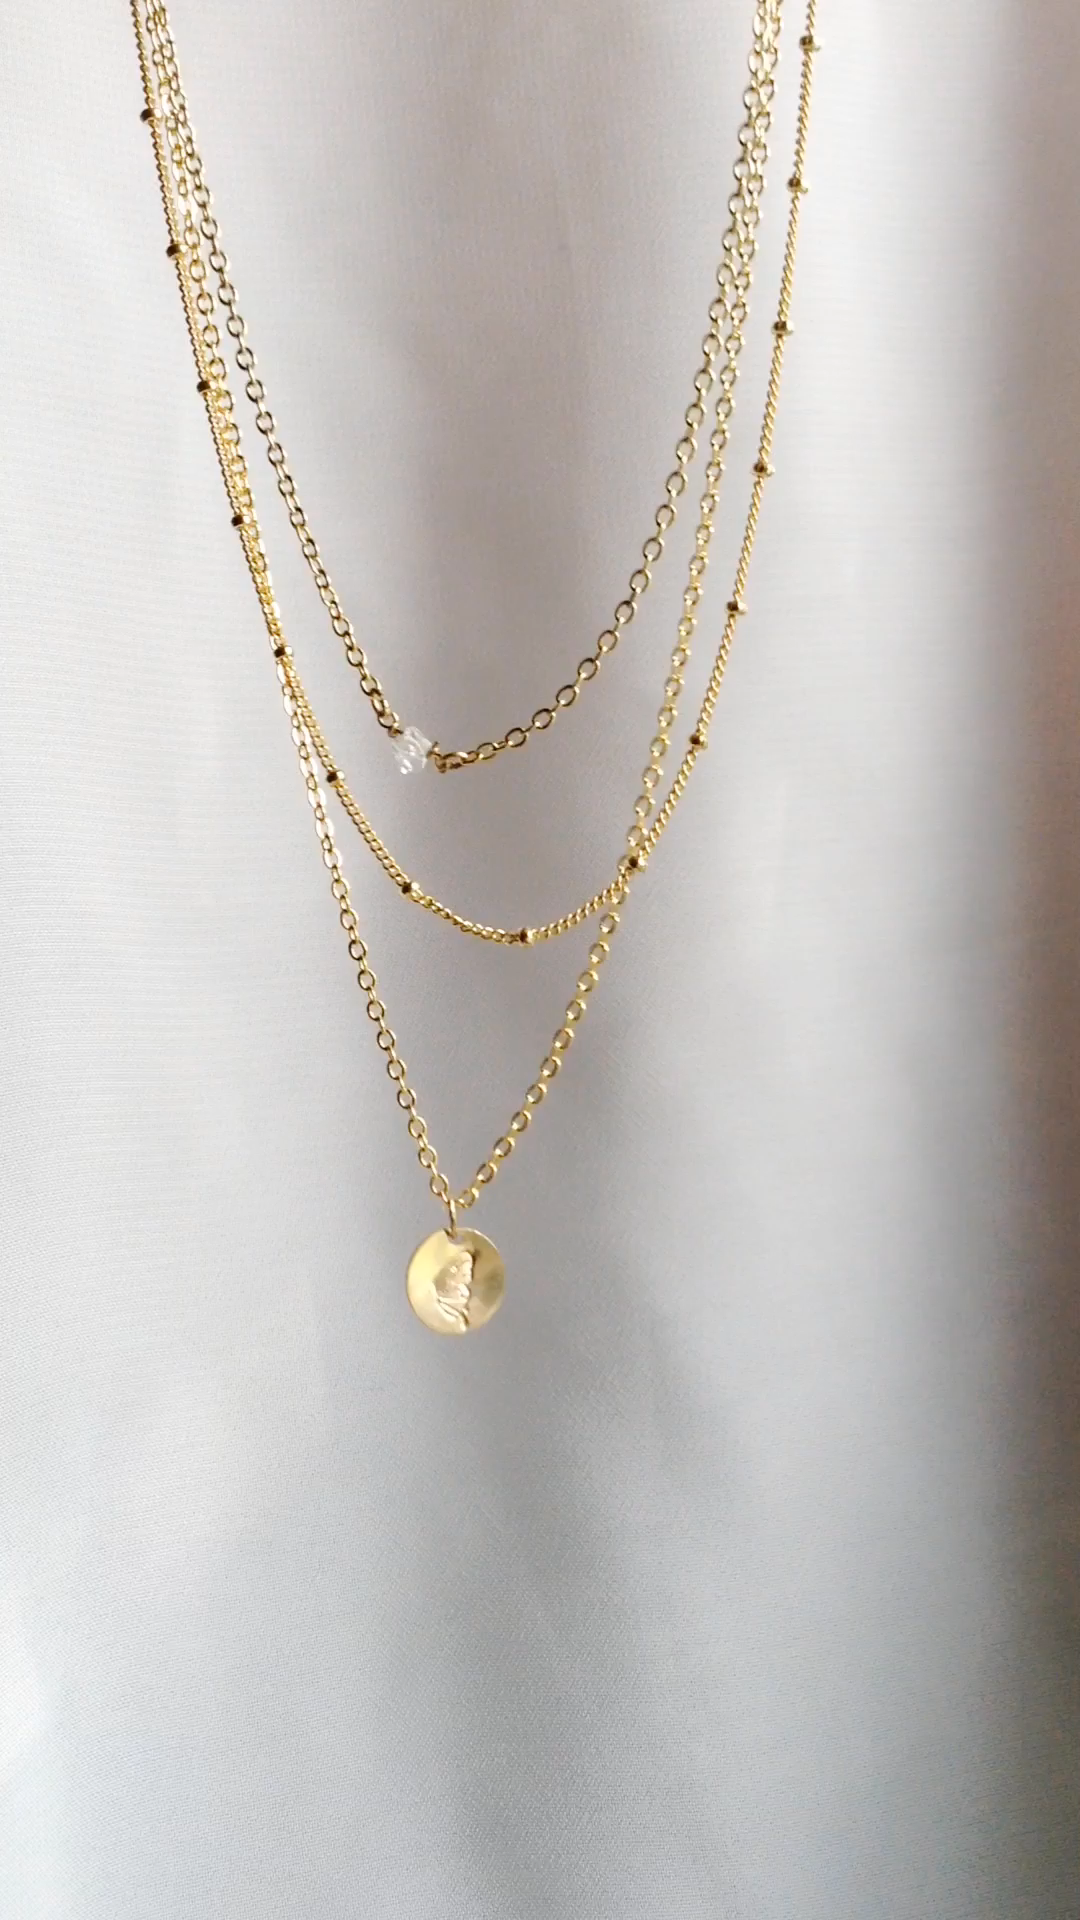 Small Dainty Necklaces For Layering | IB Jewelry